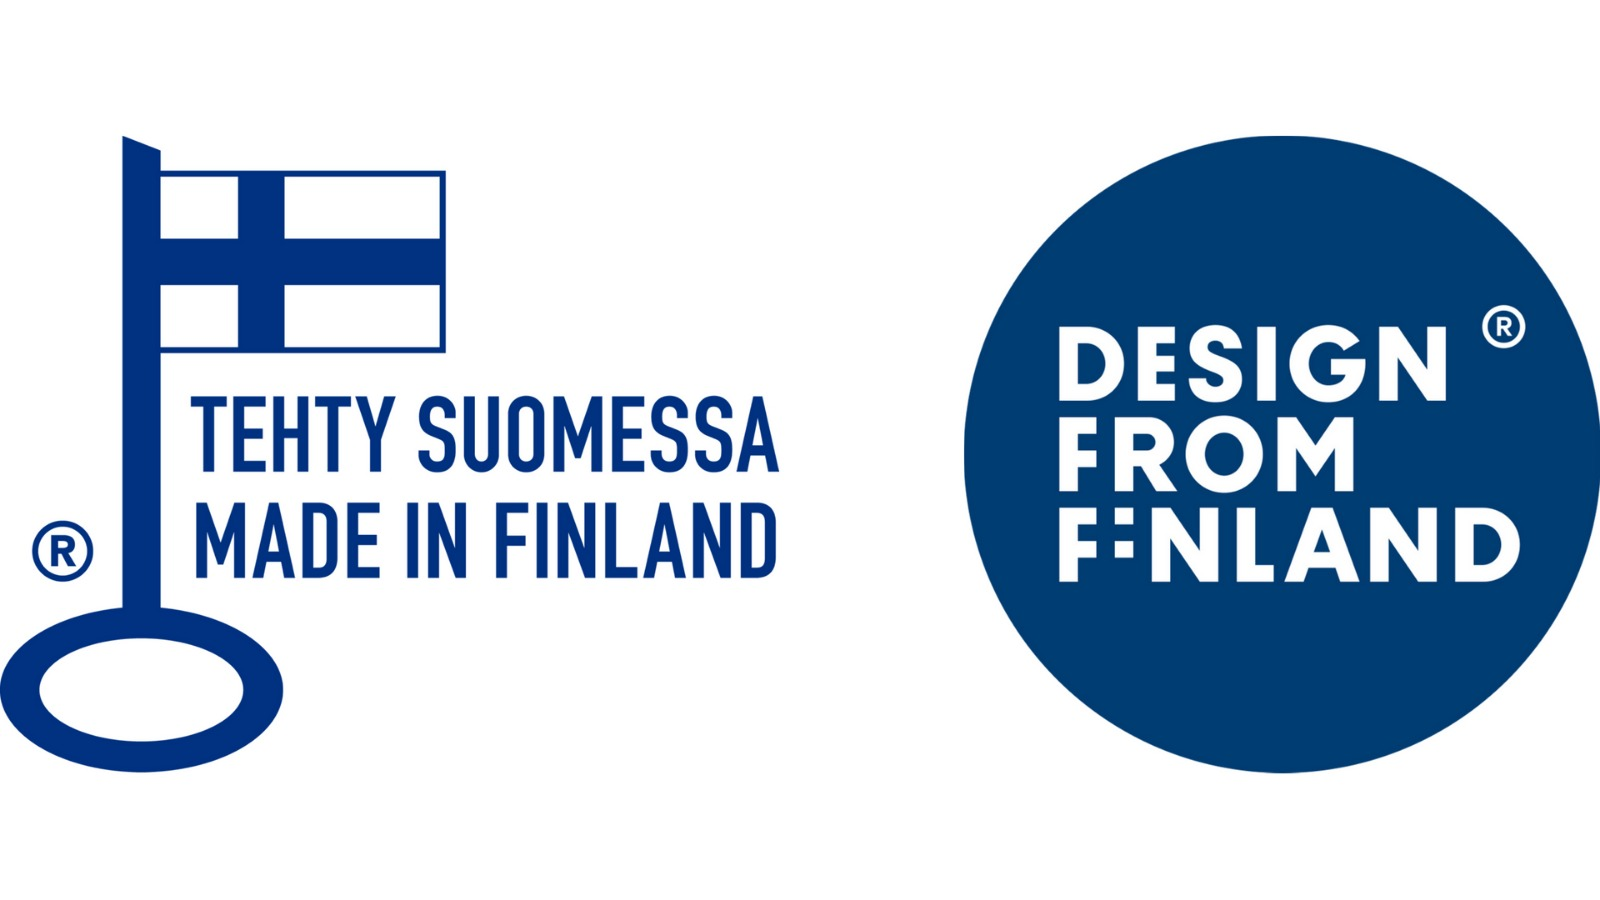 tehty suomessa - design from finland